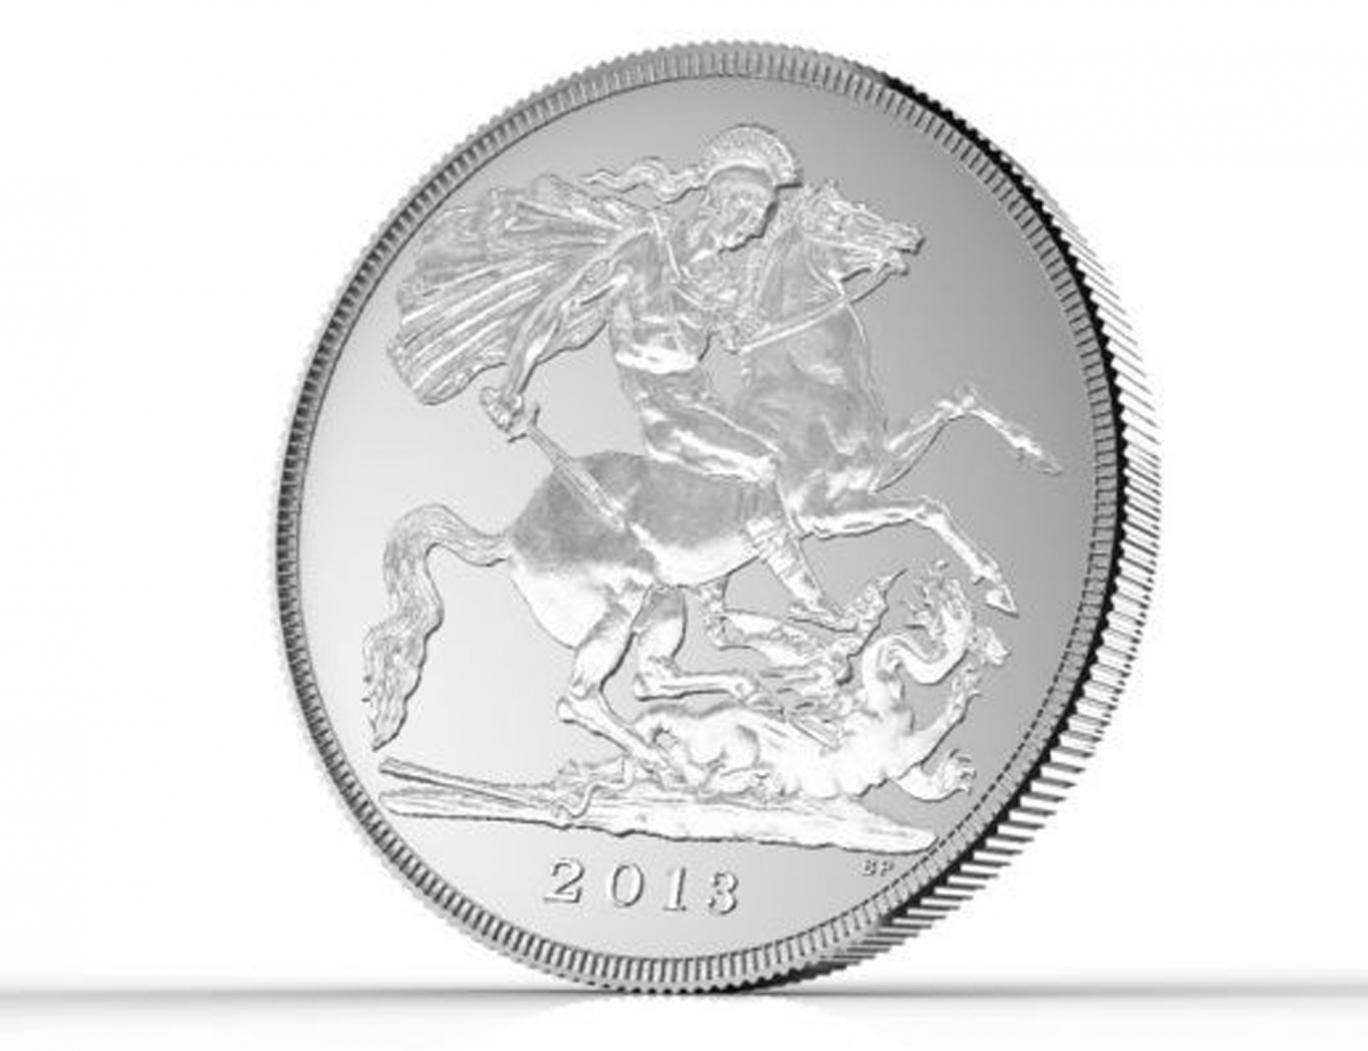 Only 250,000 £20 coins are being issued